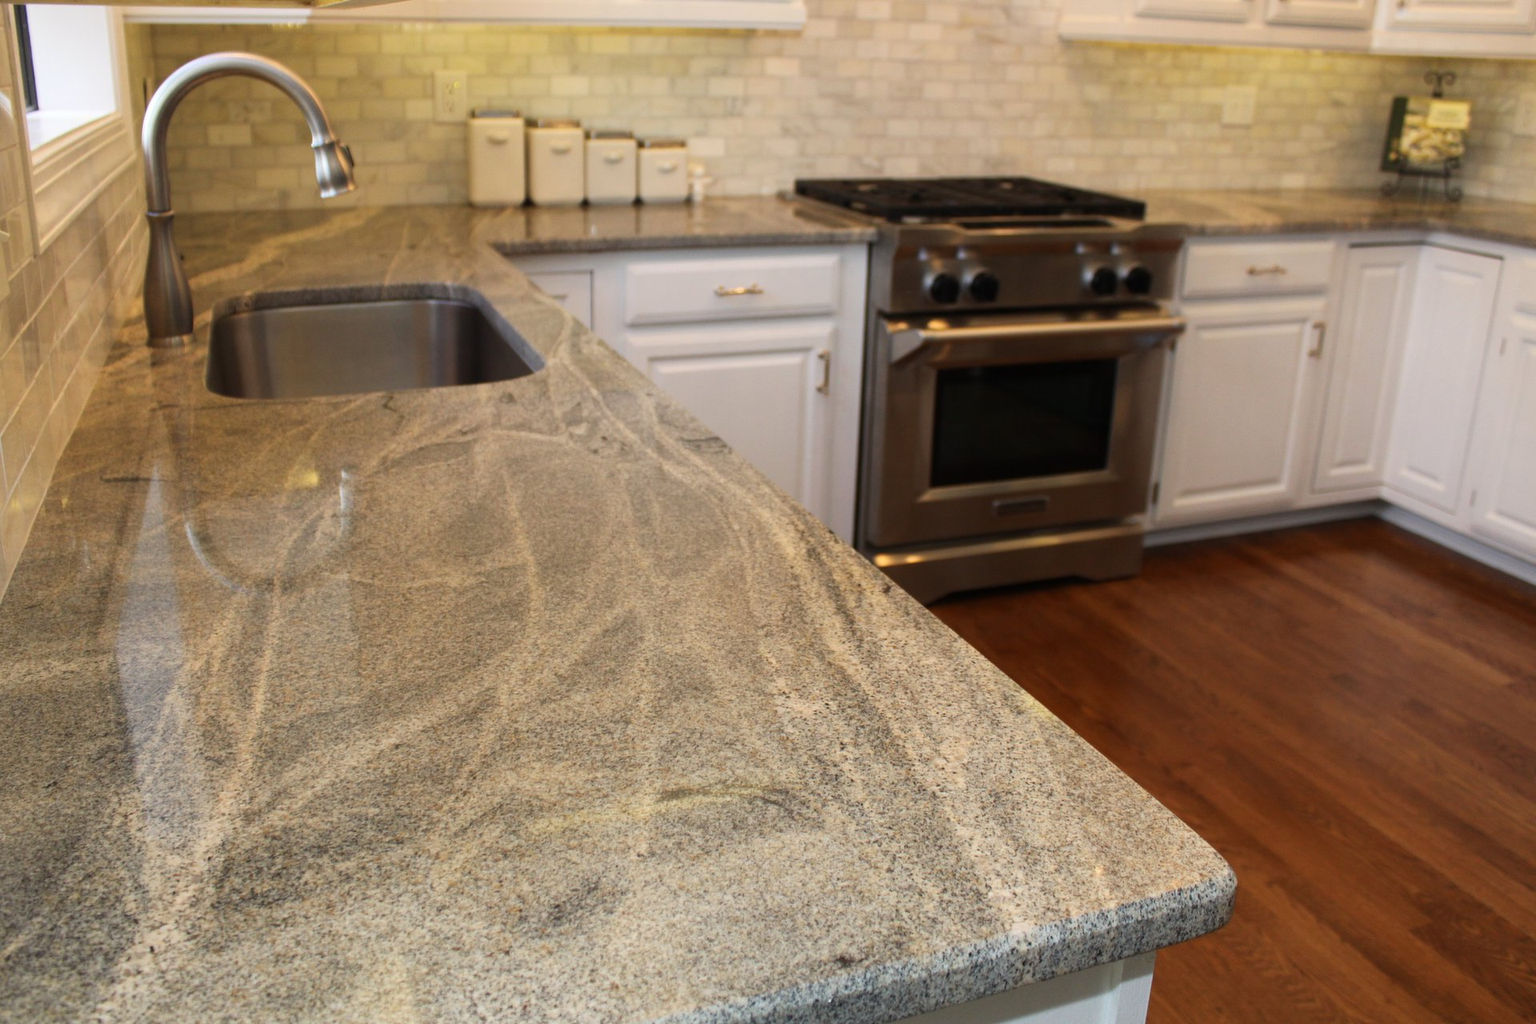 Engineered Stone Countertops : GRANITE MARBLE ENGINEERED STONE COUNTERTOPS Wix.com